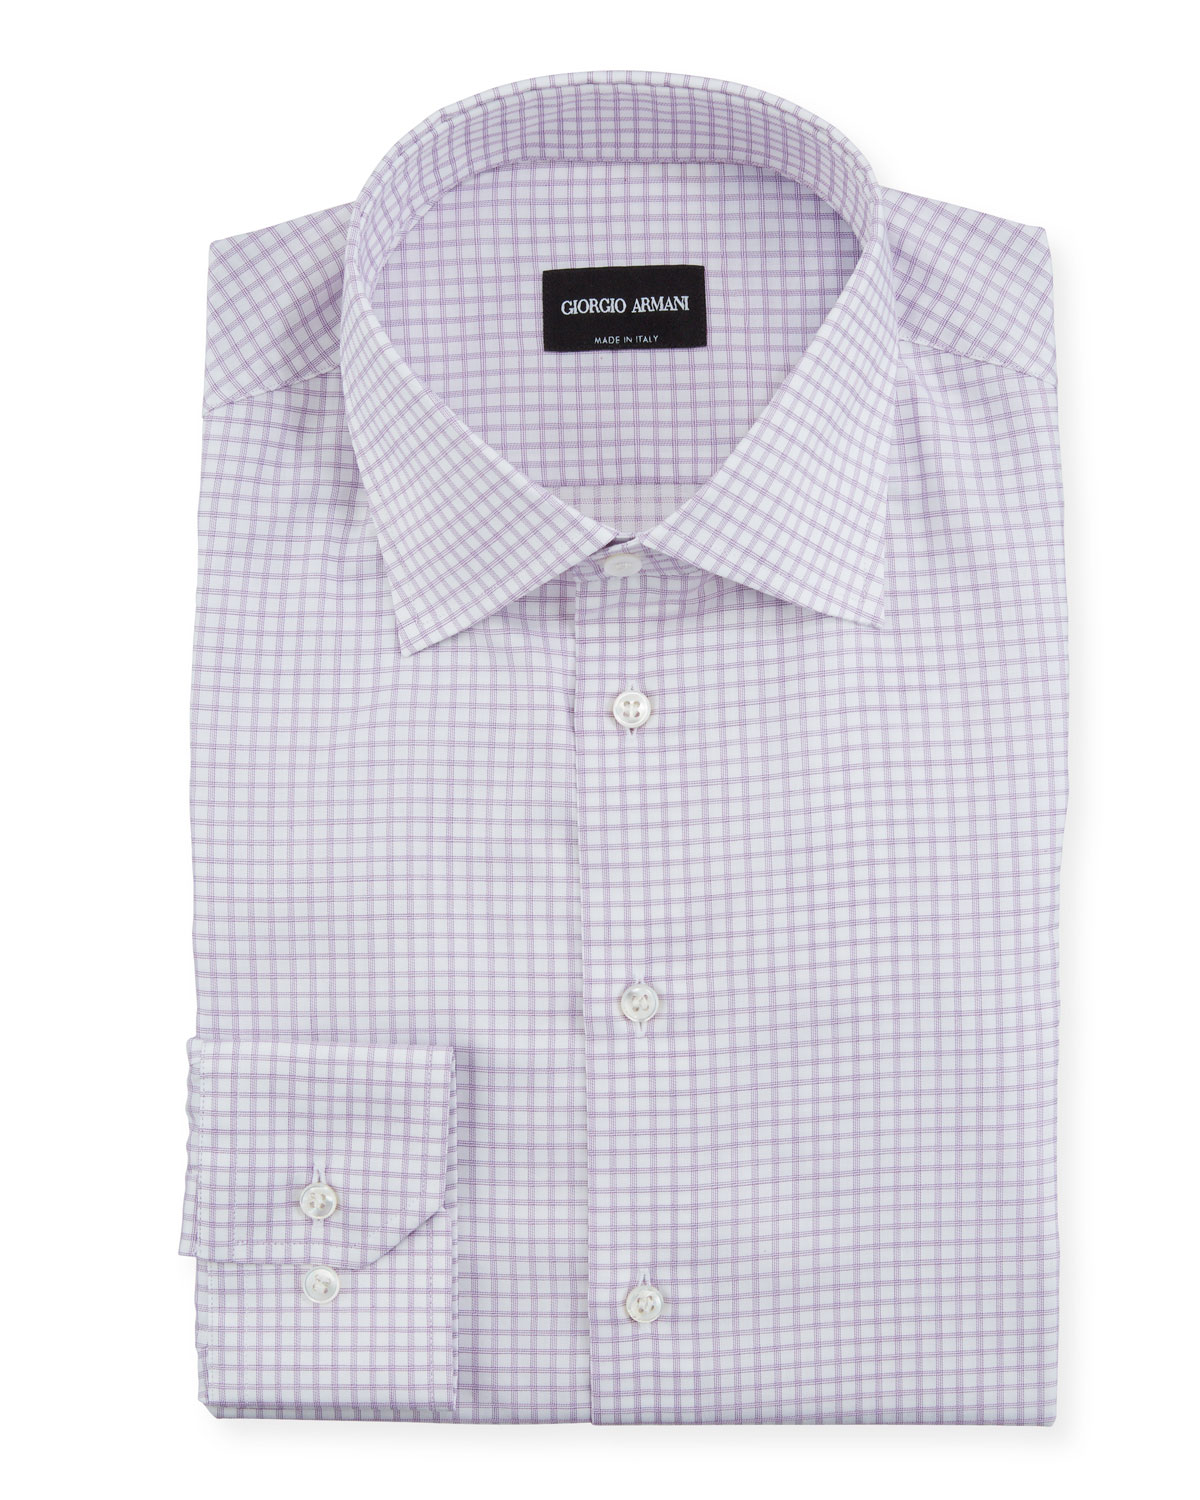 Giorgio Armani Dresses MEN'S GRAPH-CHECK DRESS SHIRT